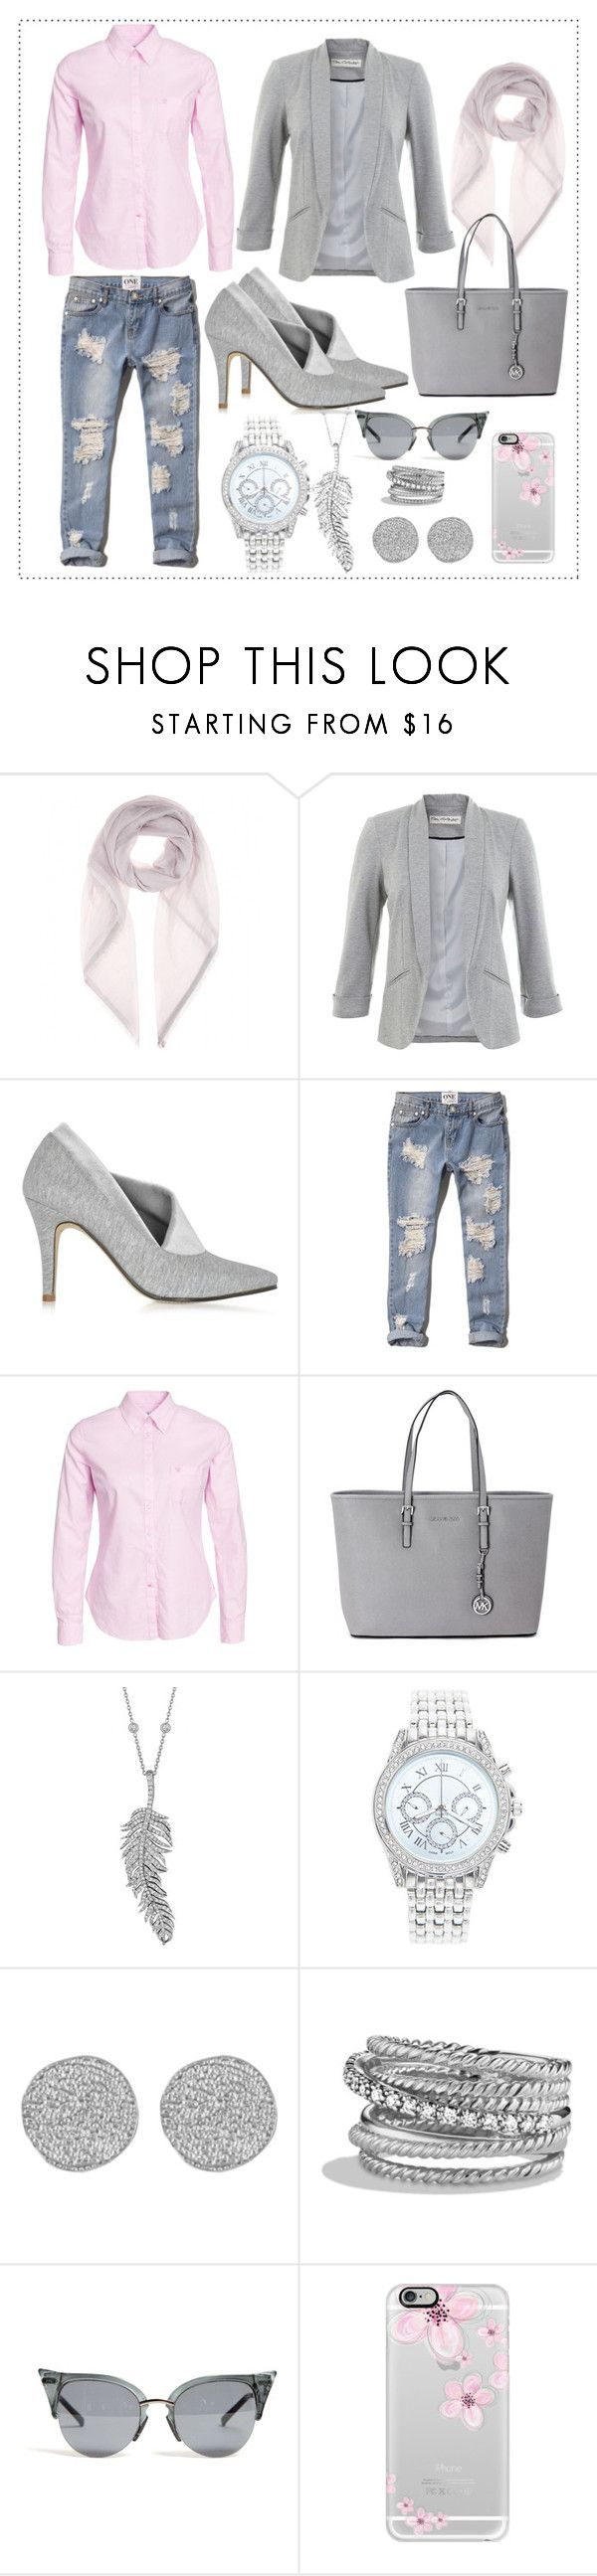 """""""Pink and Grey"""" by ina-kis ❤ liked on Polyvore featuring Loro Piana, Miss Selfridge, Zoe Lee, Abercrombie & Fitch, Morris, Michael Kors, Penny Preville, Lane Bryant, Karen Kane and David Yurman"""